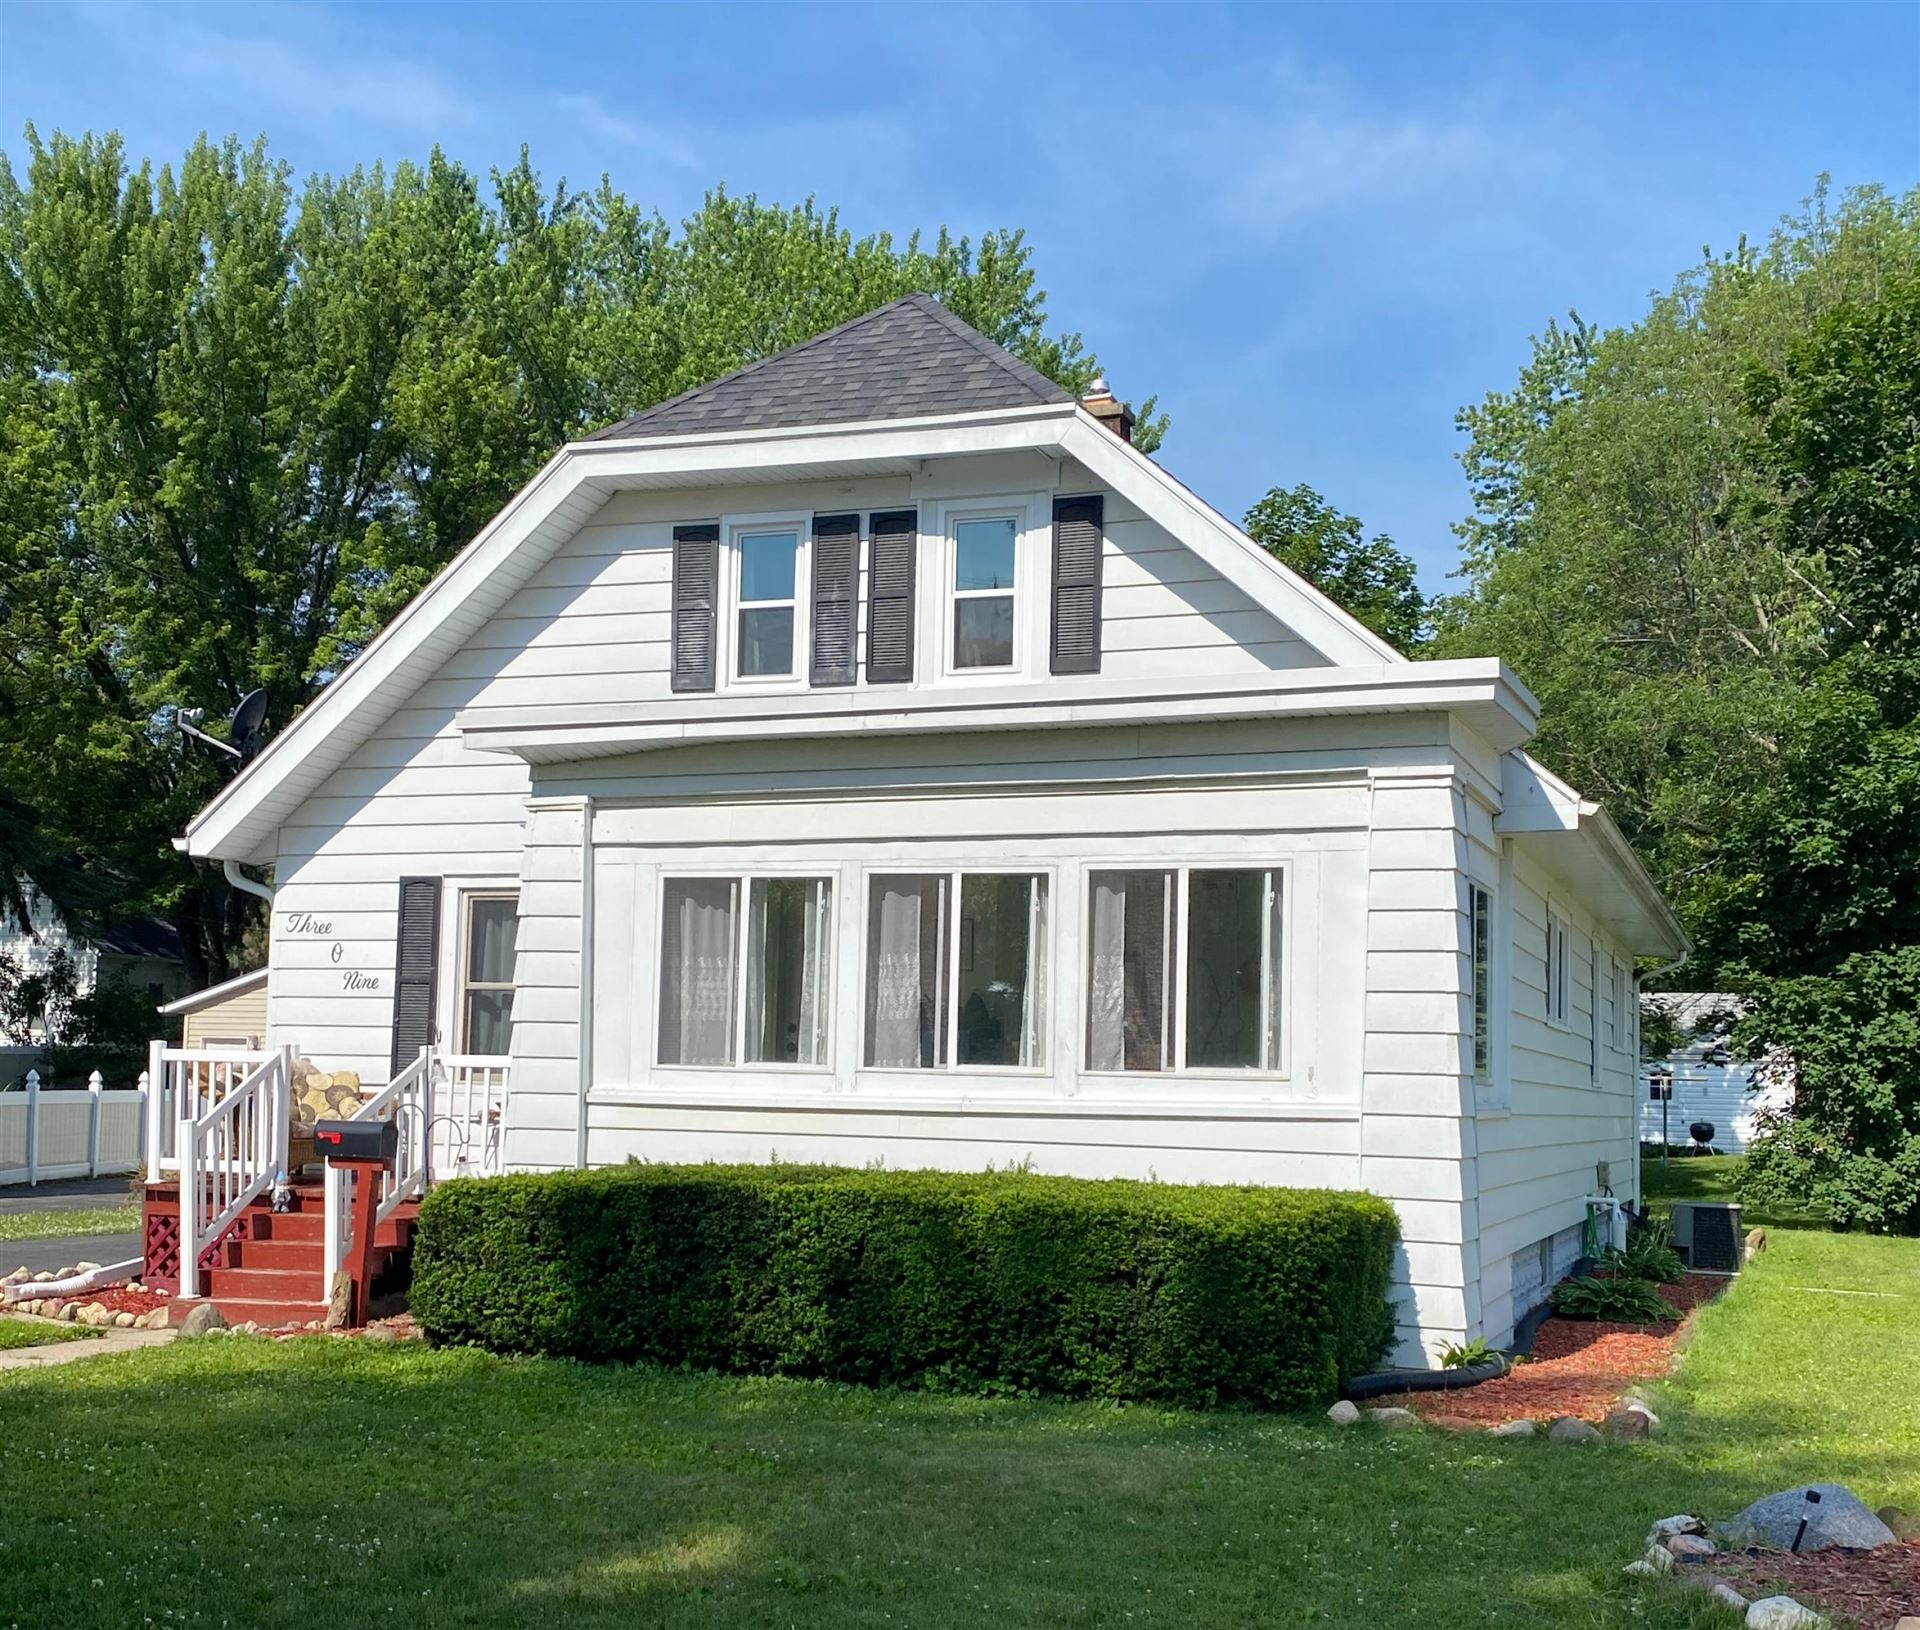 309 Shirley St, Fort Atkinson, WI 53538 - #: 1696836